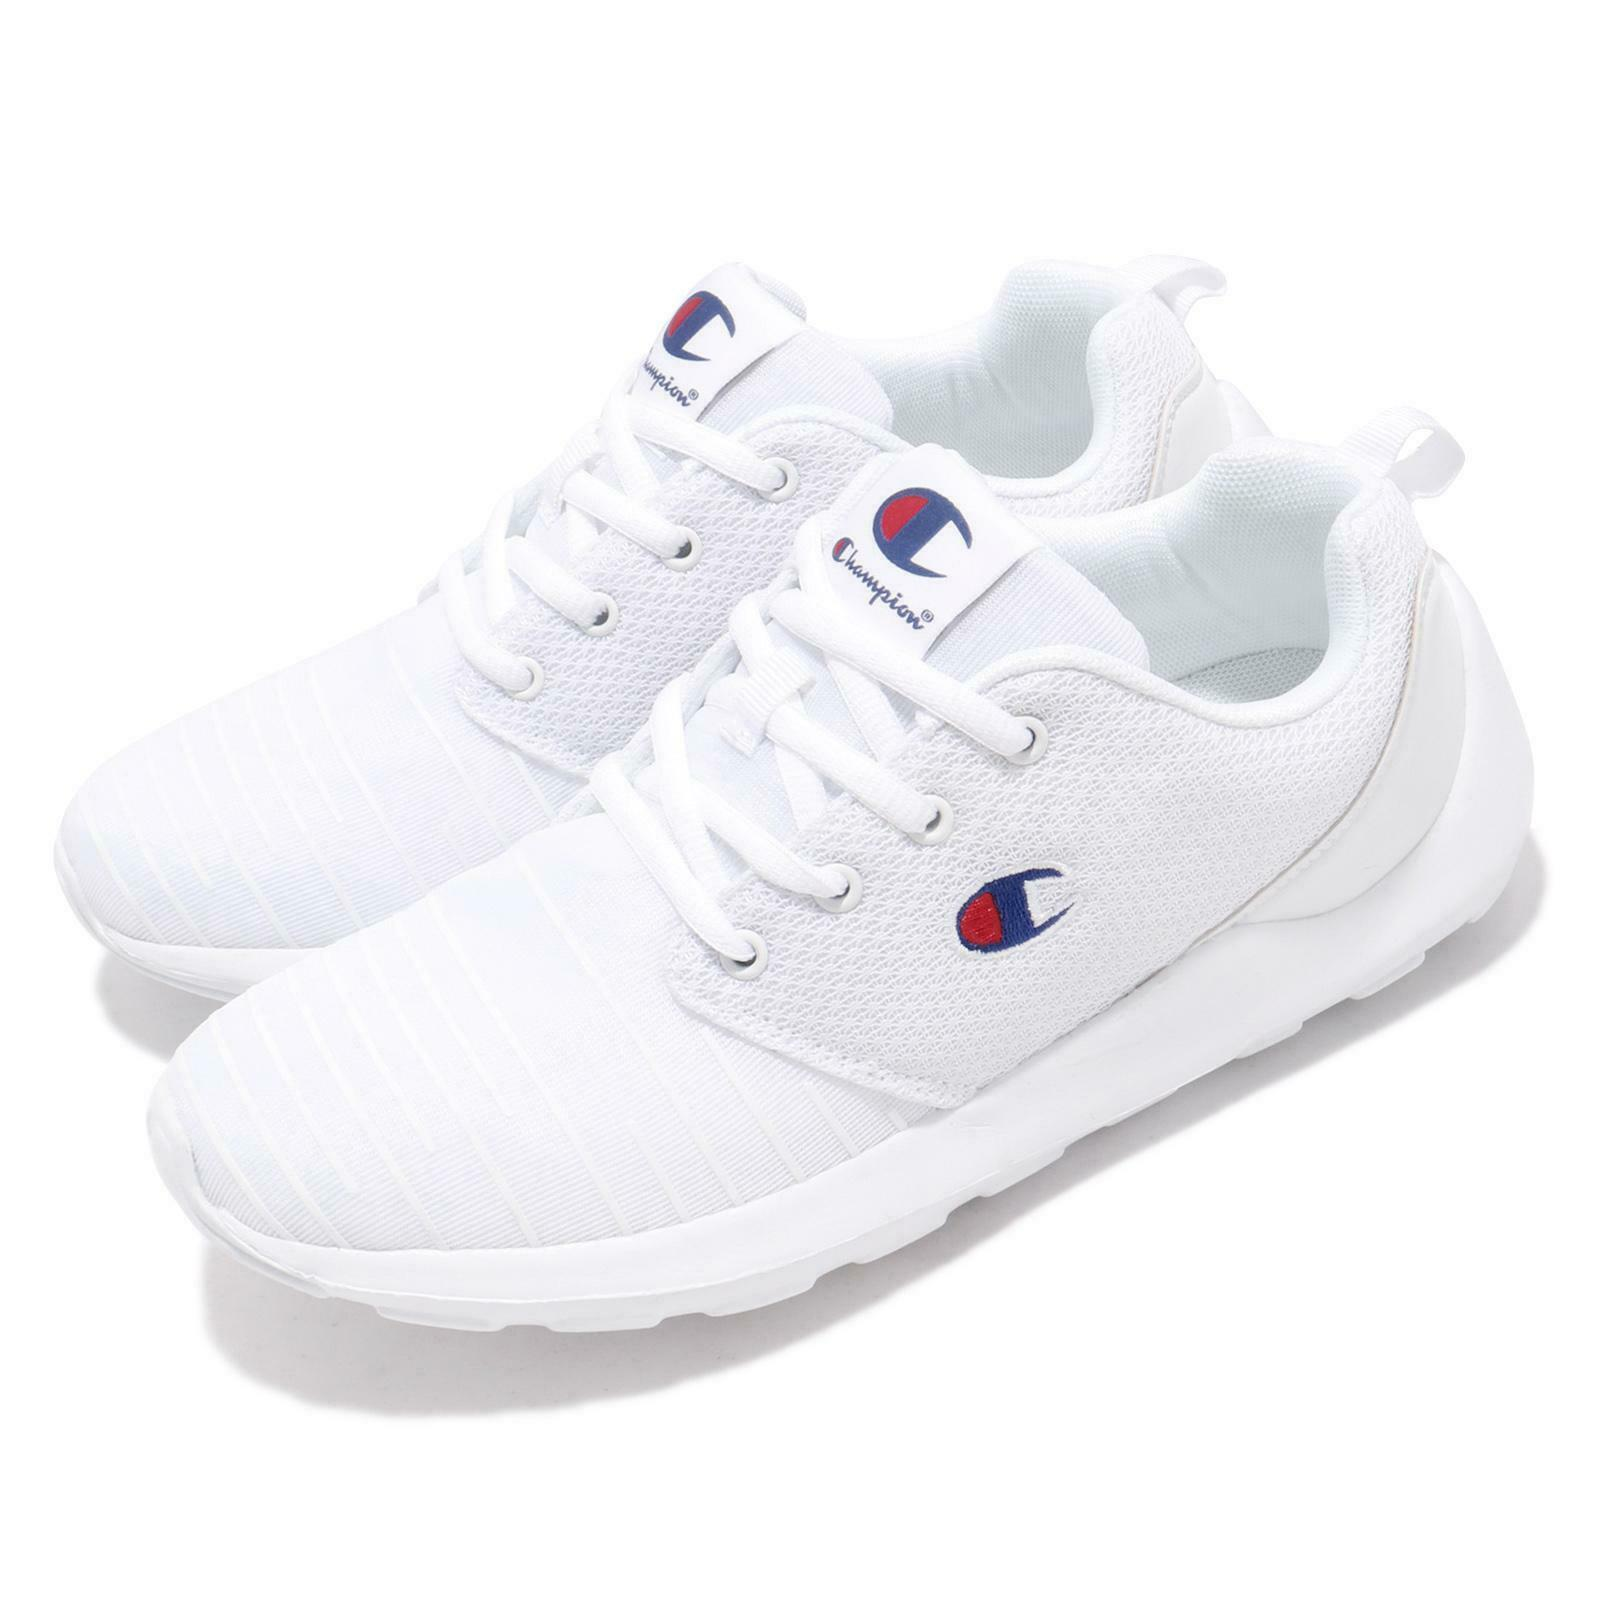 Champion Campus A I blanco rojo azul Men Casual Lifestyle zapatos zapatilla de deporte 91-1210200